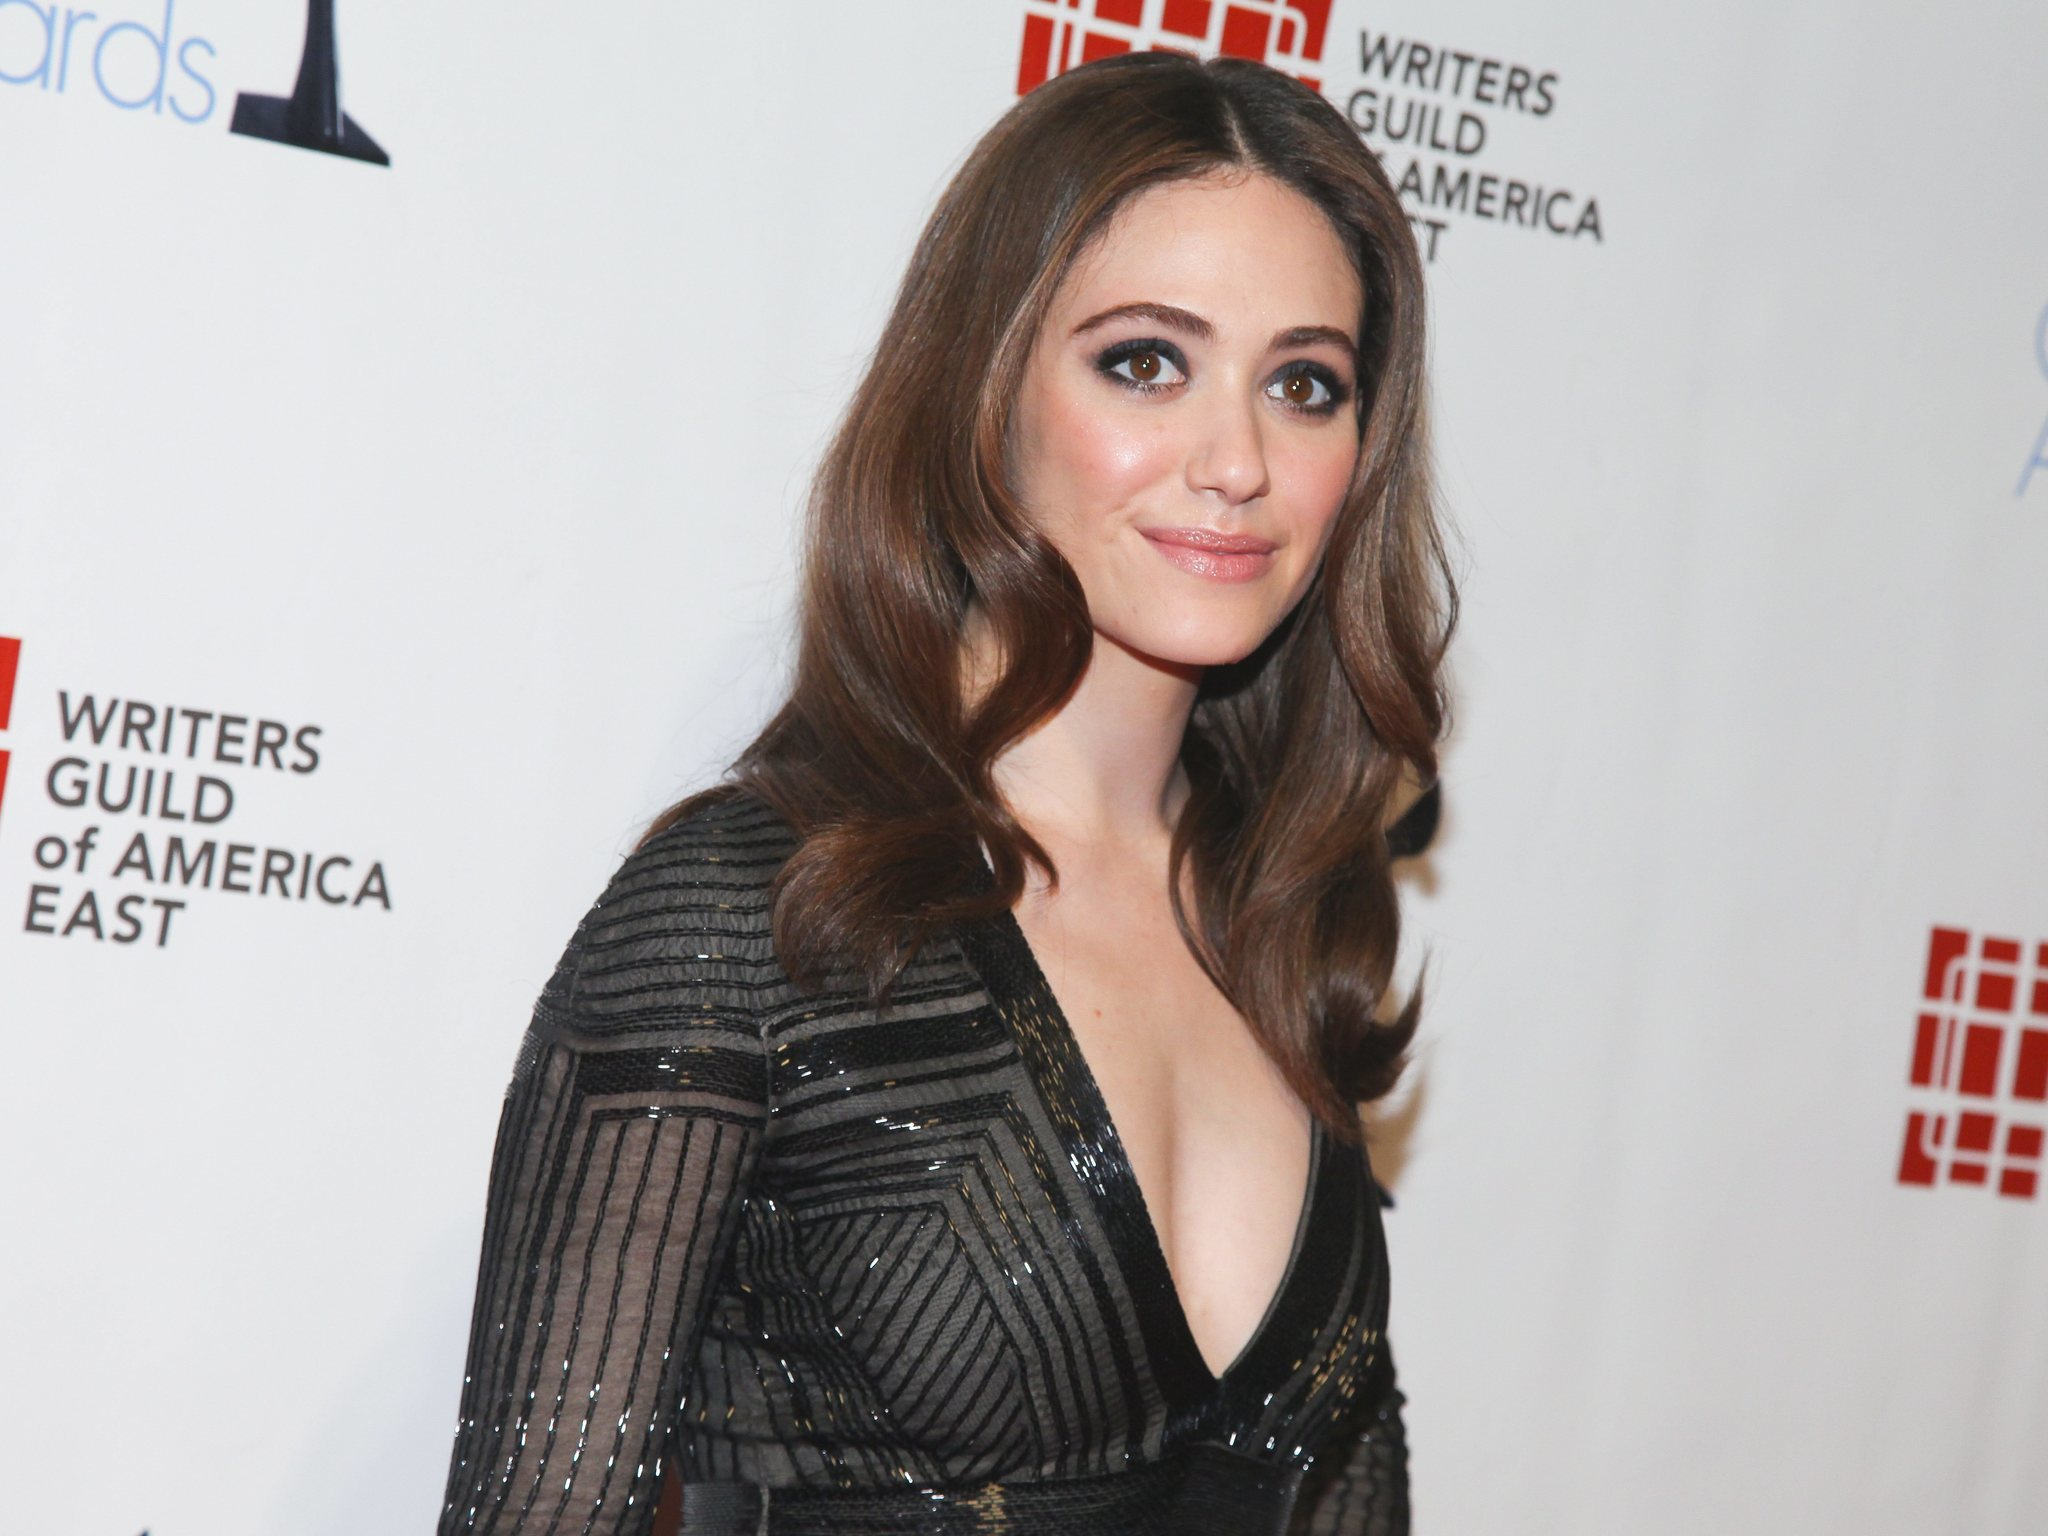 u0026 39 shameless u0026 39  star emmy rossum says she u0026 39 s leaving showtime series